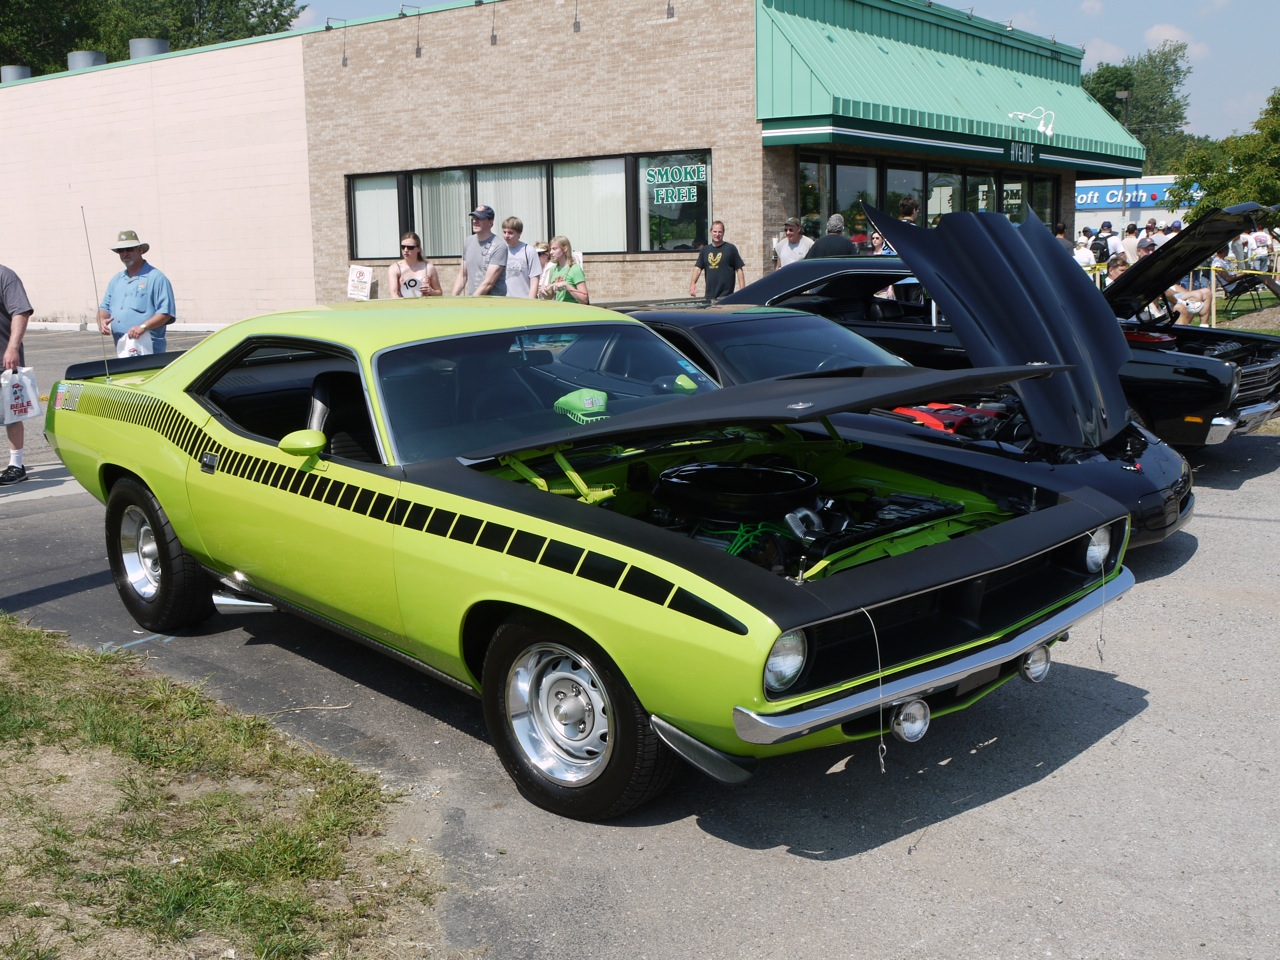 Muscle Car Plymouth Barracuda By Thecarloos On Deviantart